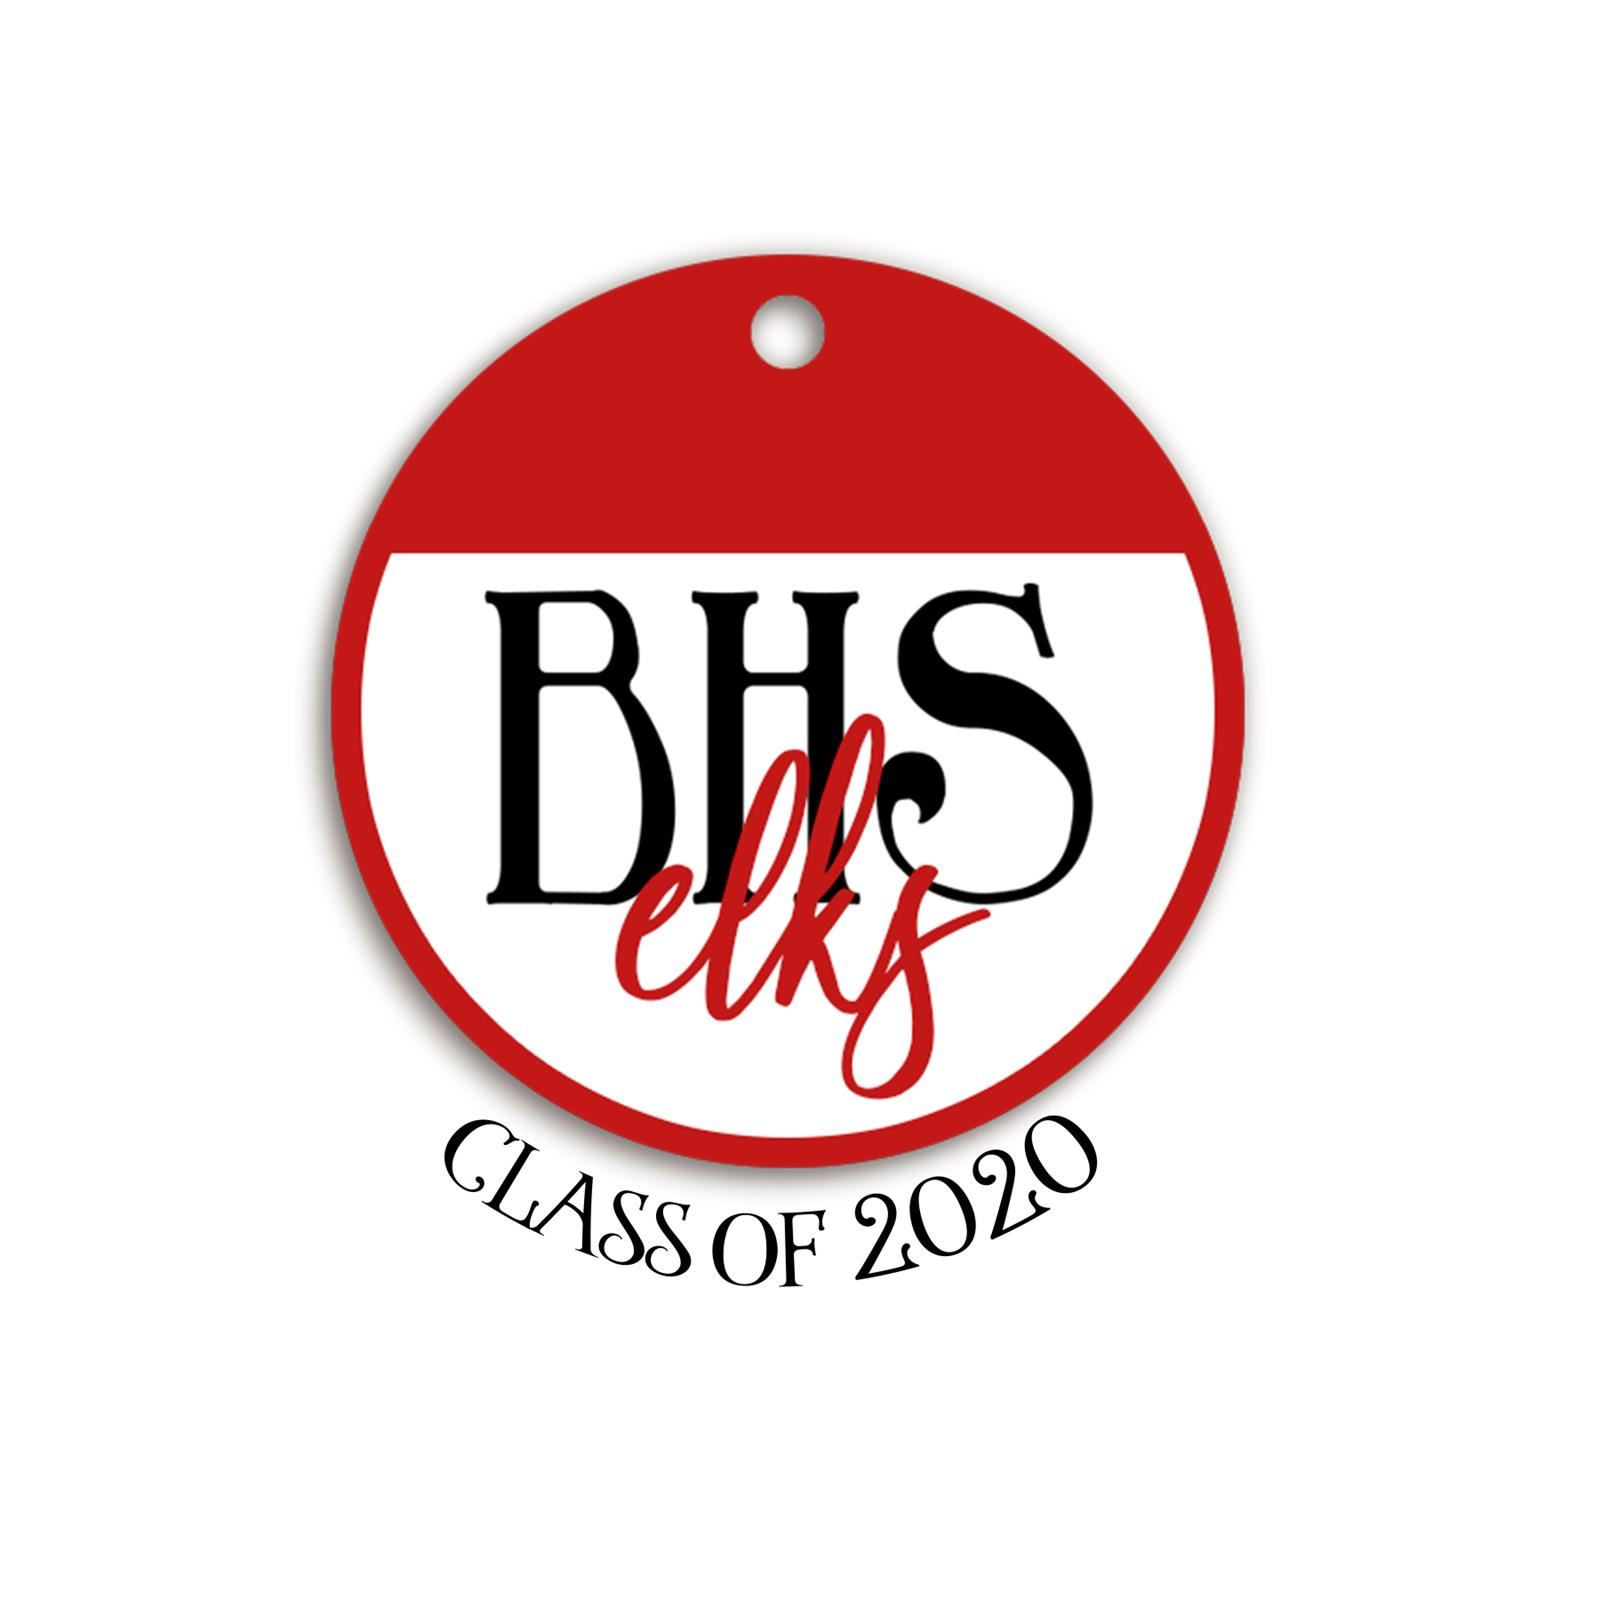 red & white tag text: bsh elks class of 2020